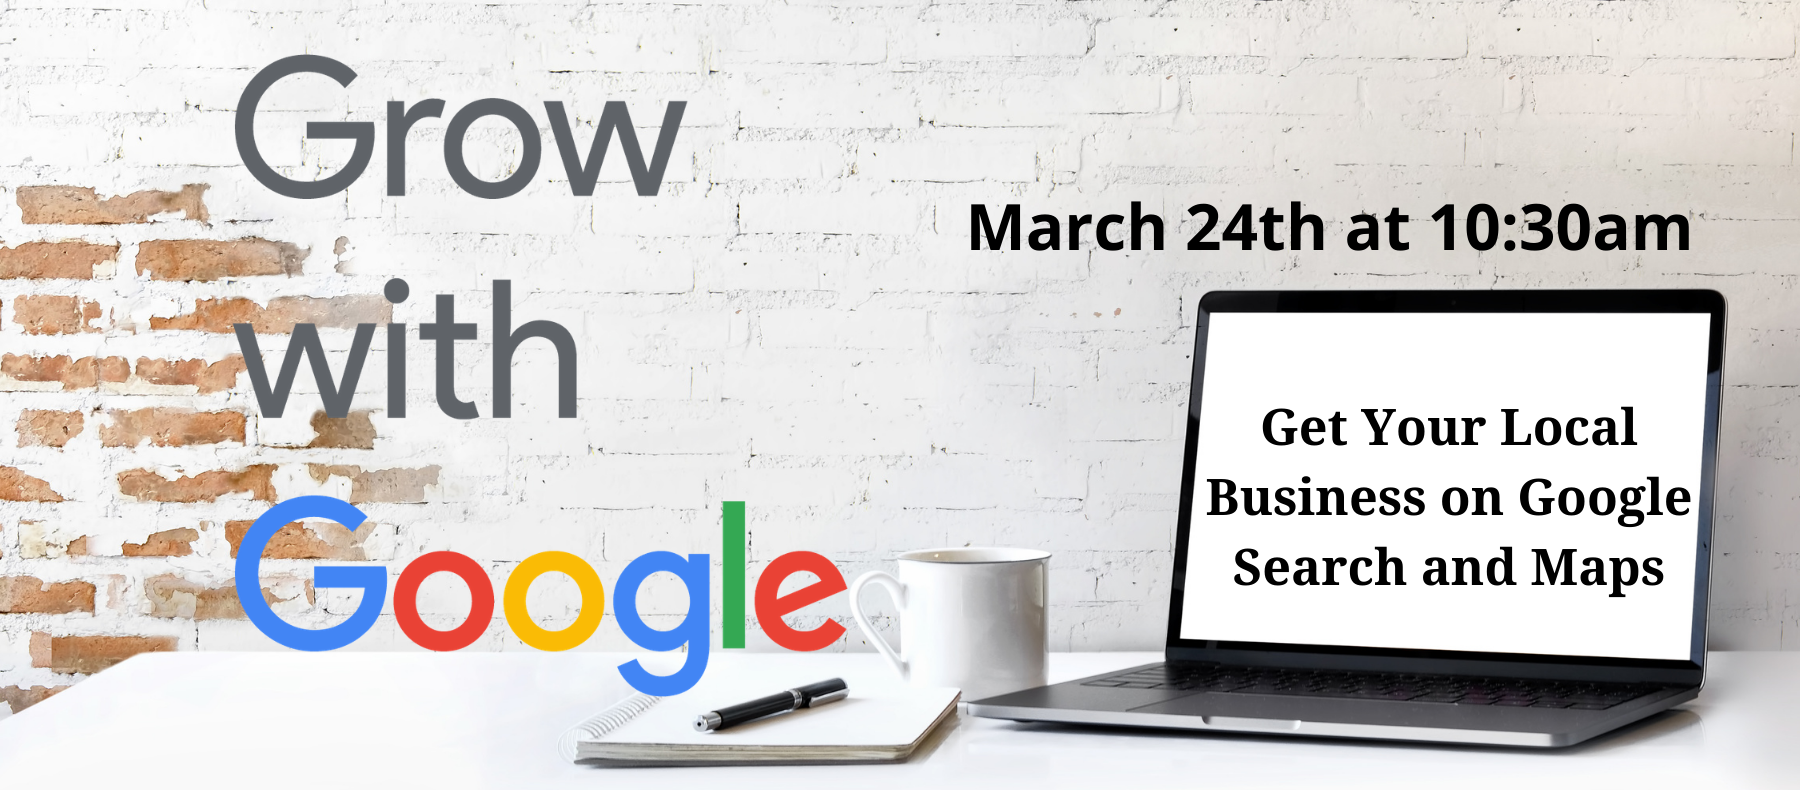 Google-March-Event.png